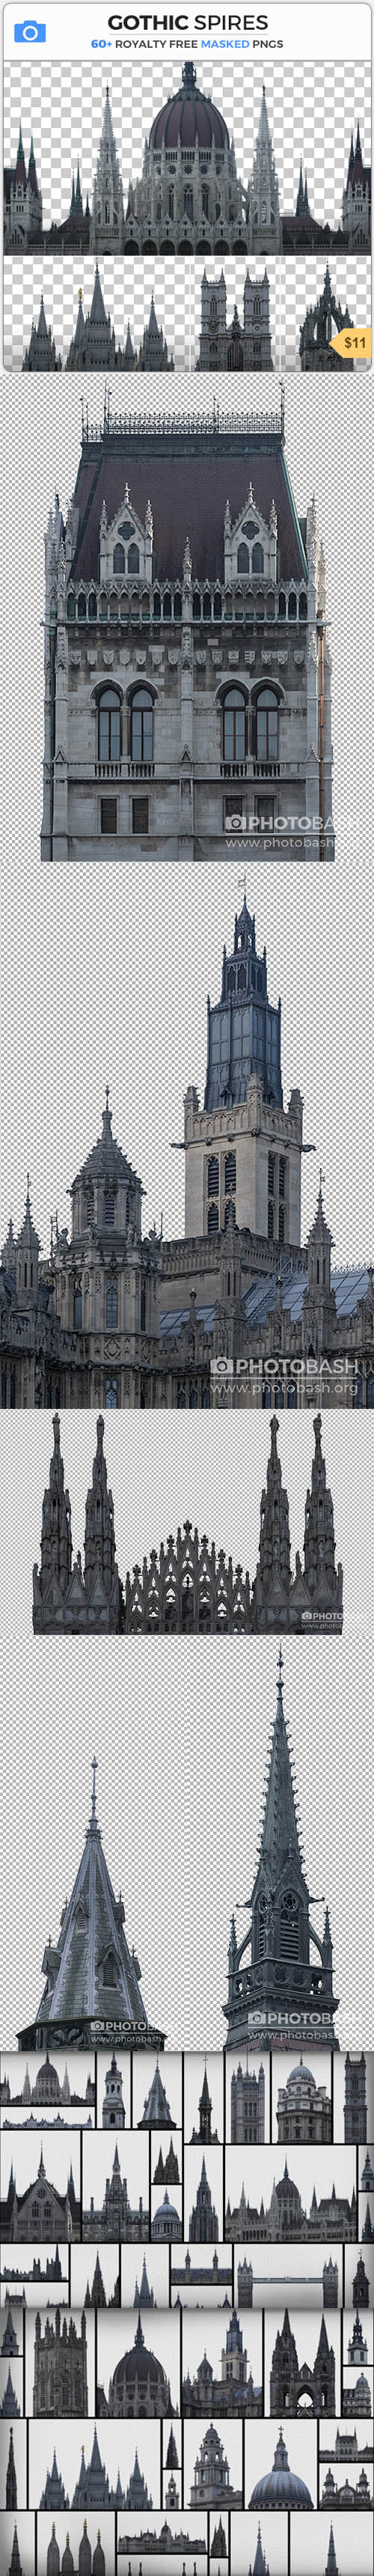 GOTHIC SPIRES - 60+ Royality Masked PNGs + Photoshop Shapes CSH